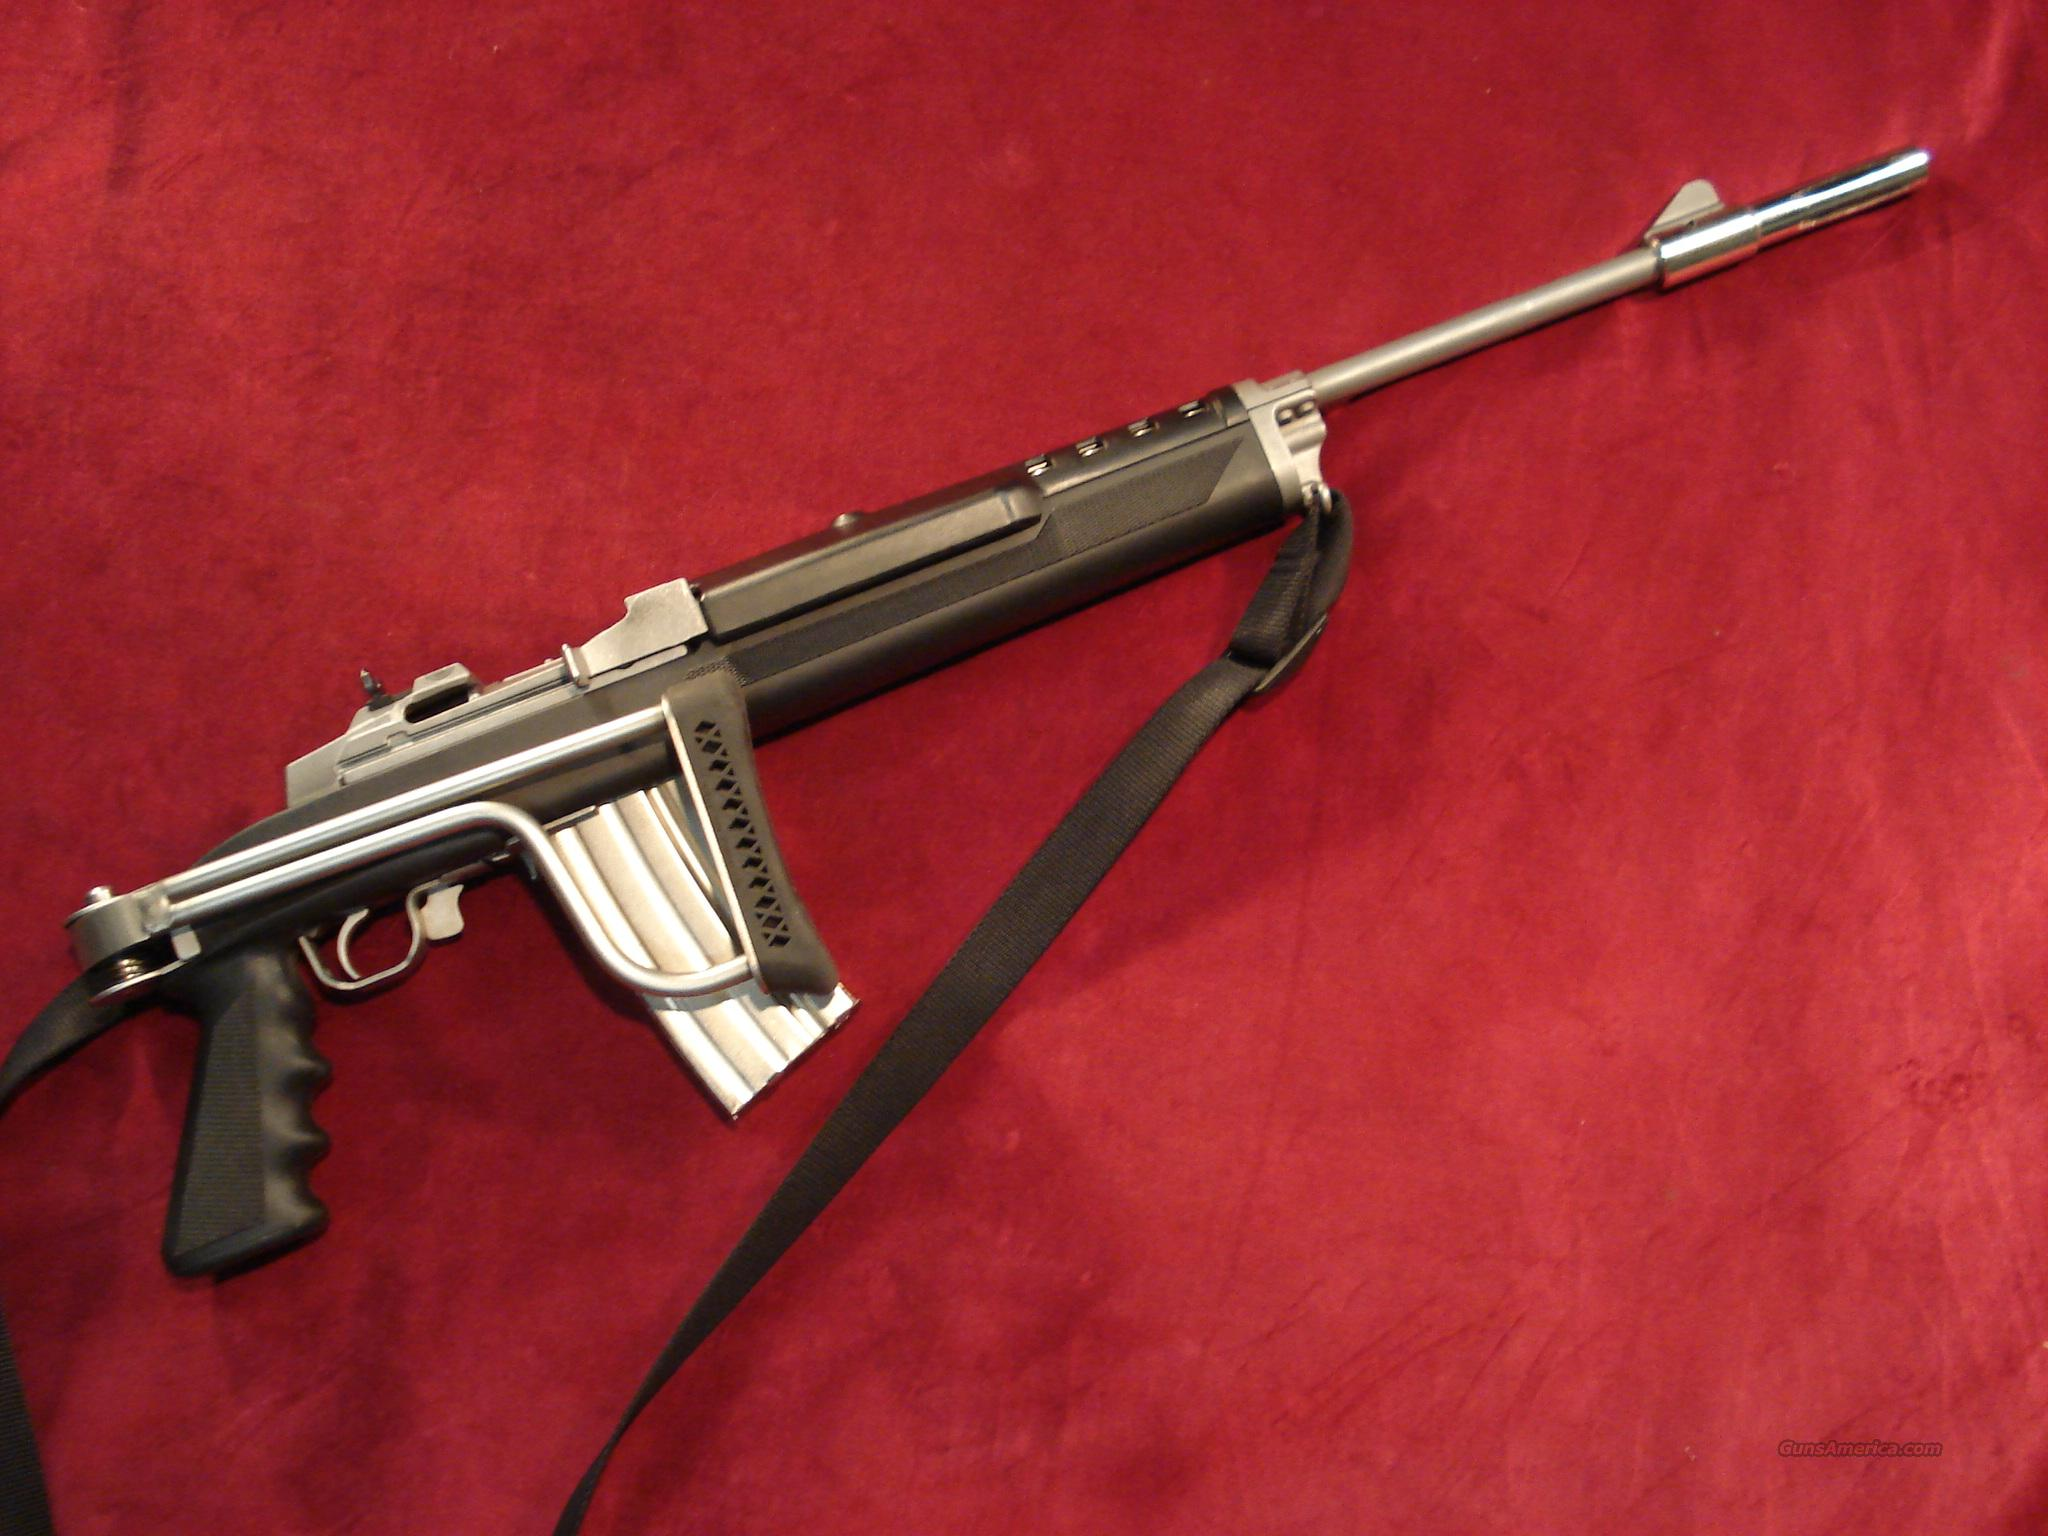 RUGER MINI 14 STAINLESS RANCH 223CAL. IN BUTLER CREEK FOLDING STOCK   Guns > Rifles > Ruger Rifles > Mini-14 Type